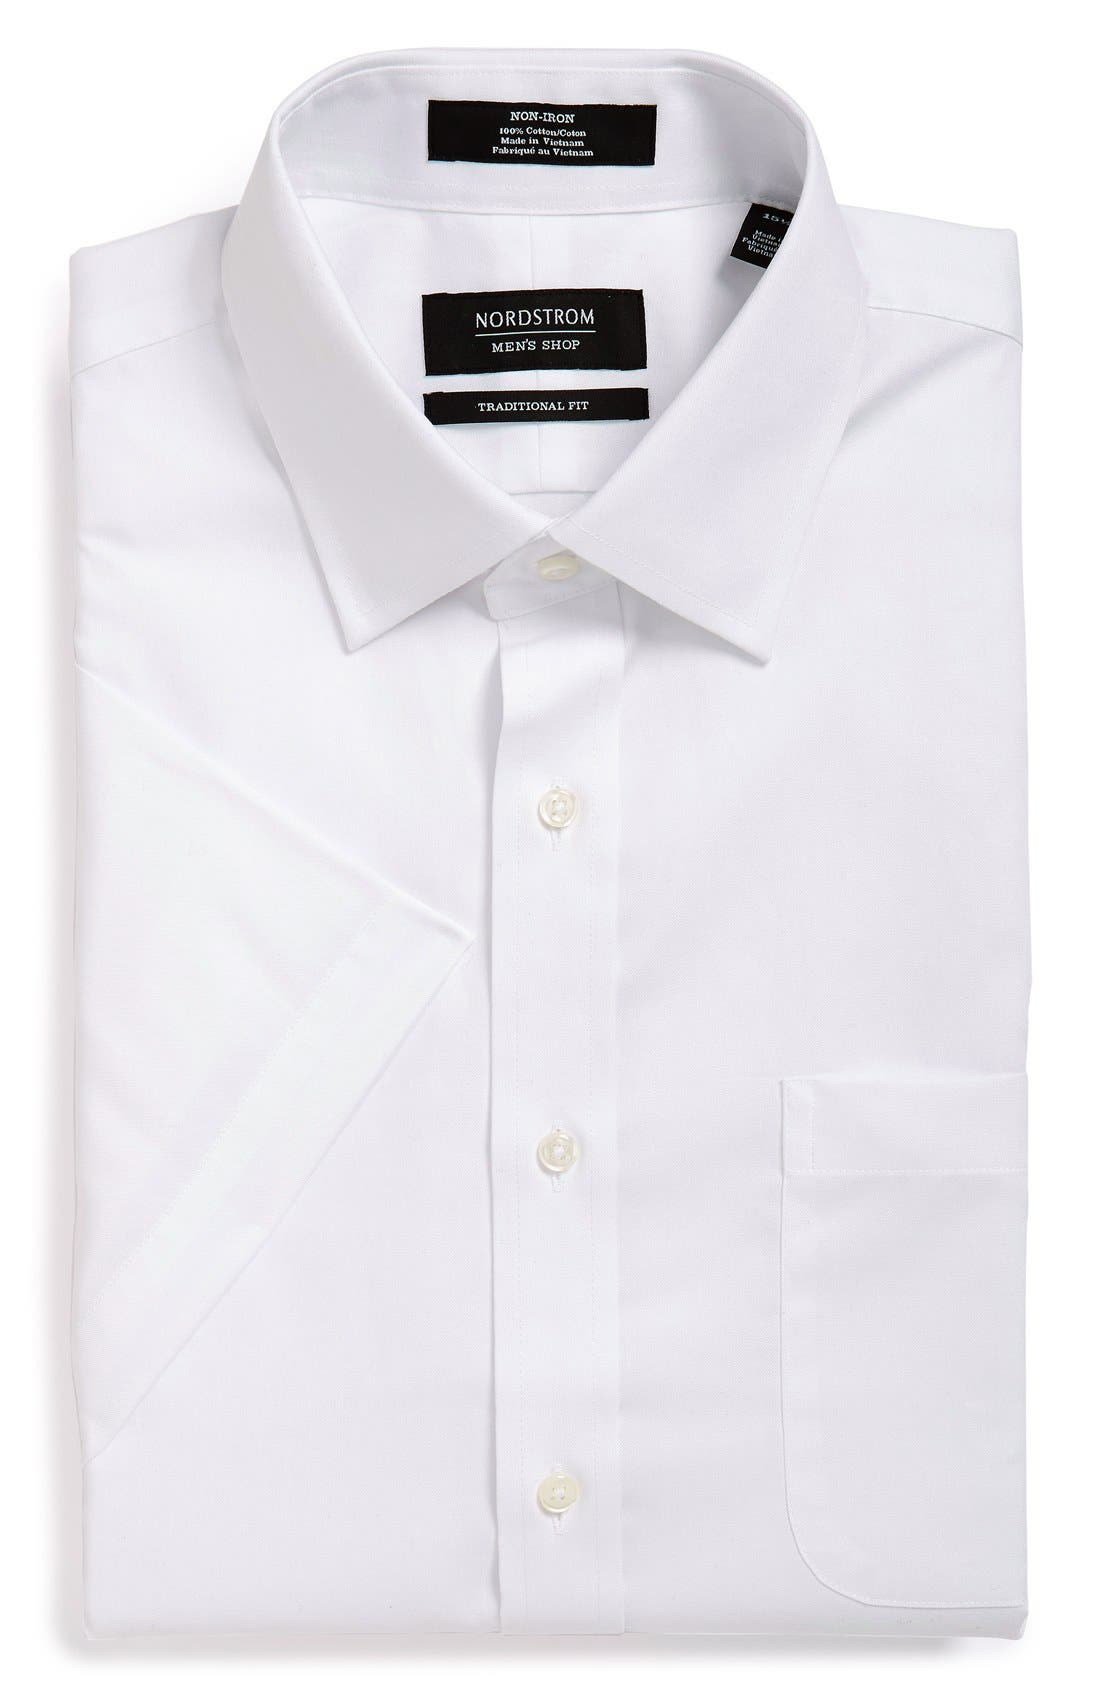 Main Image - Nordstrom Men's Shop Traditional Fit Non-Iron Solid Short Sleeve Dress Shirt